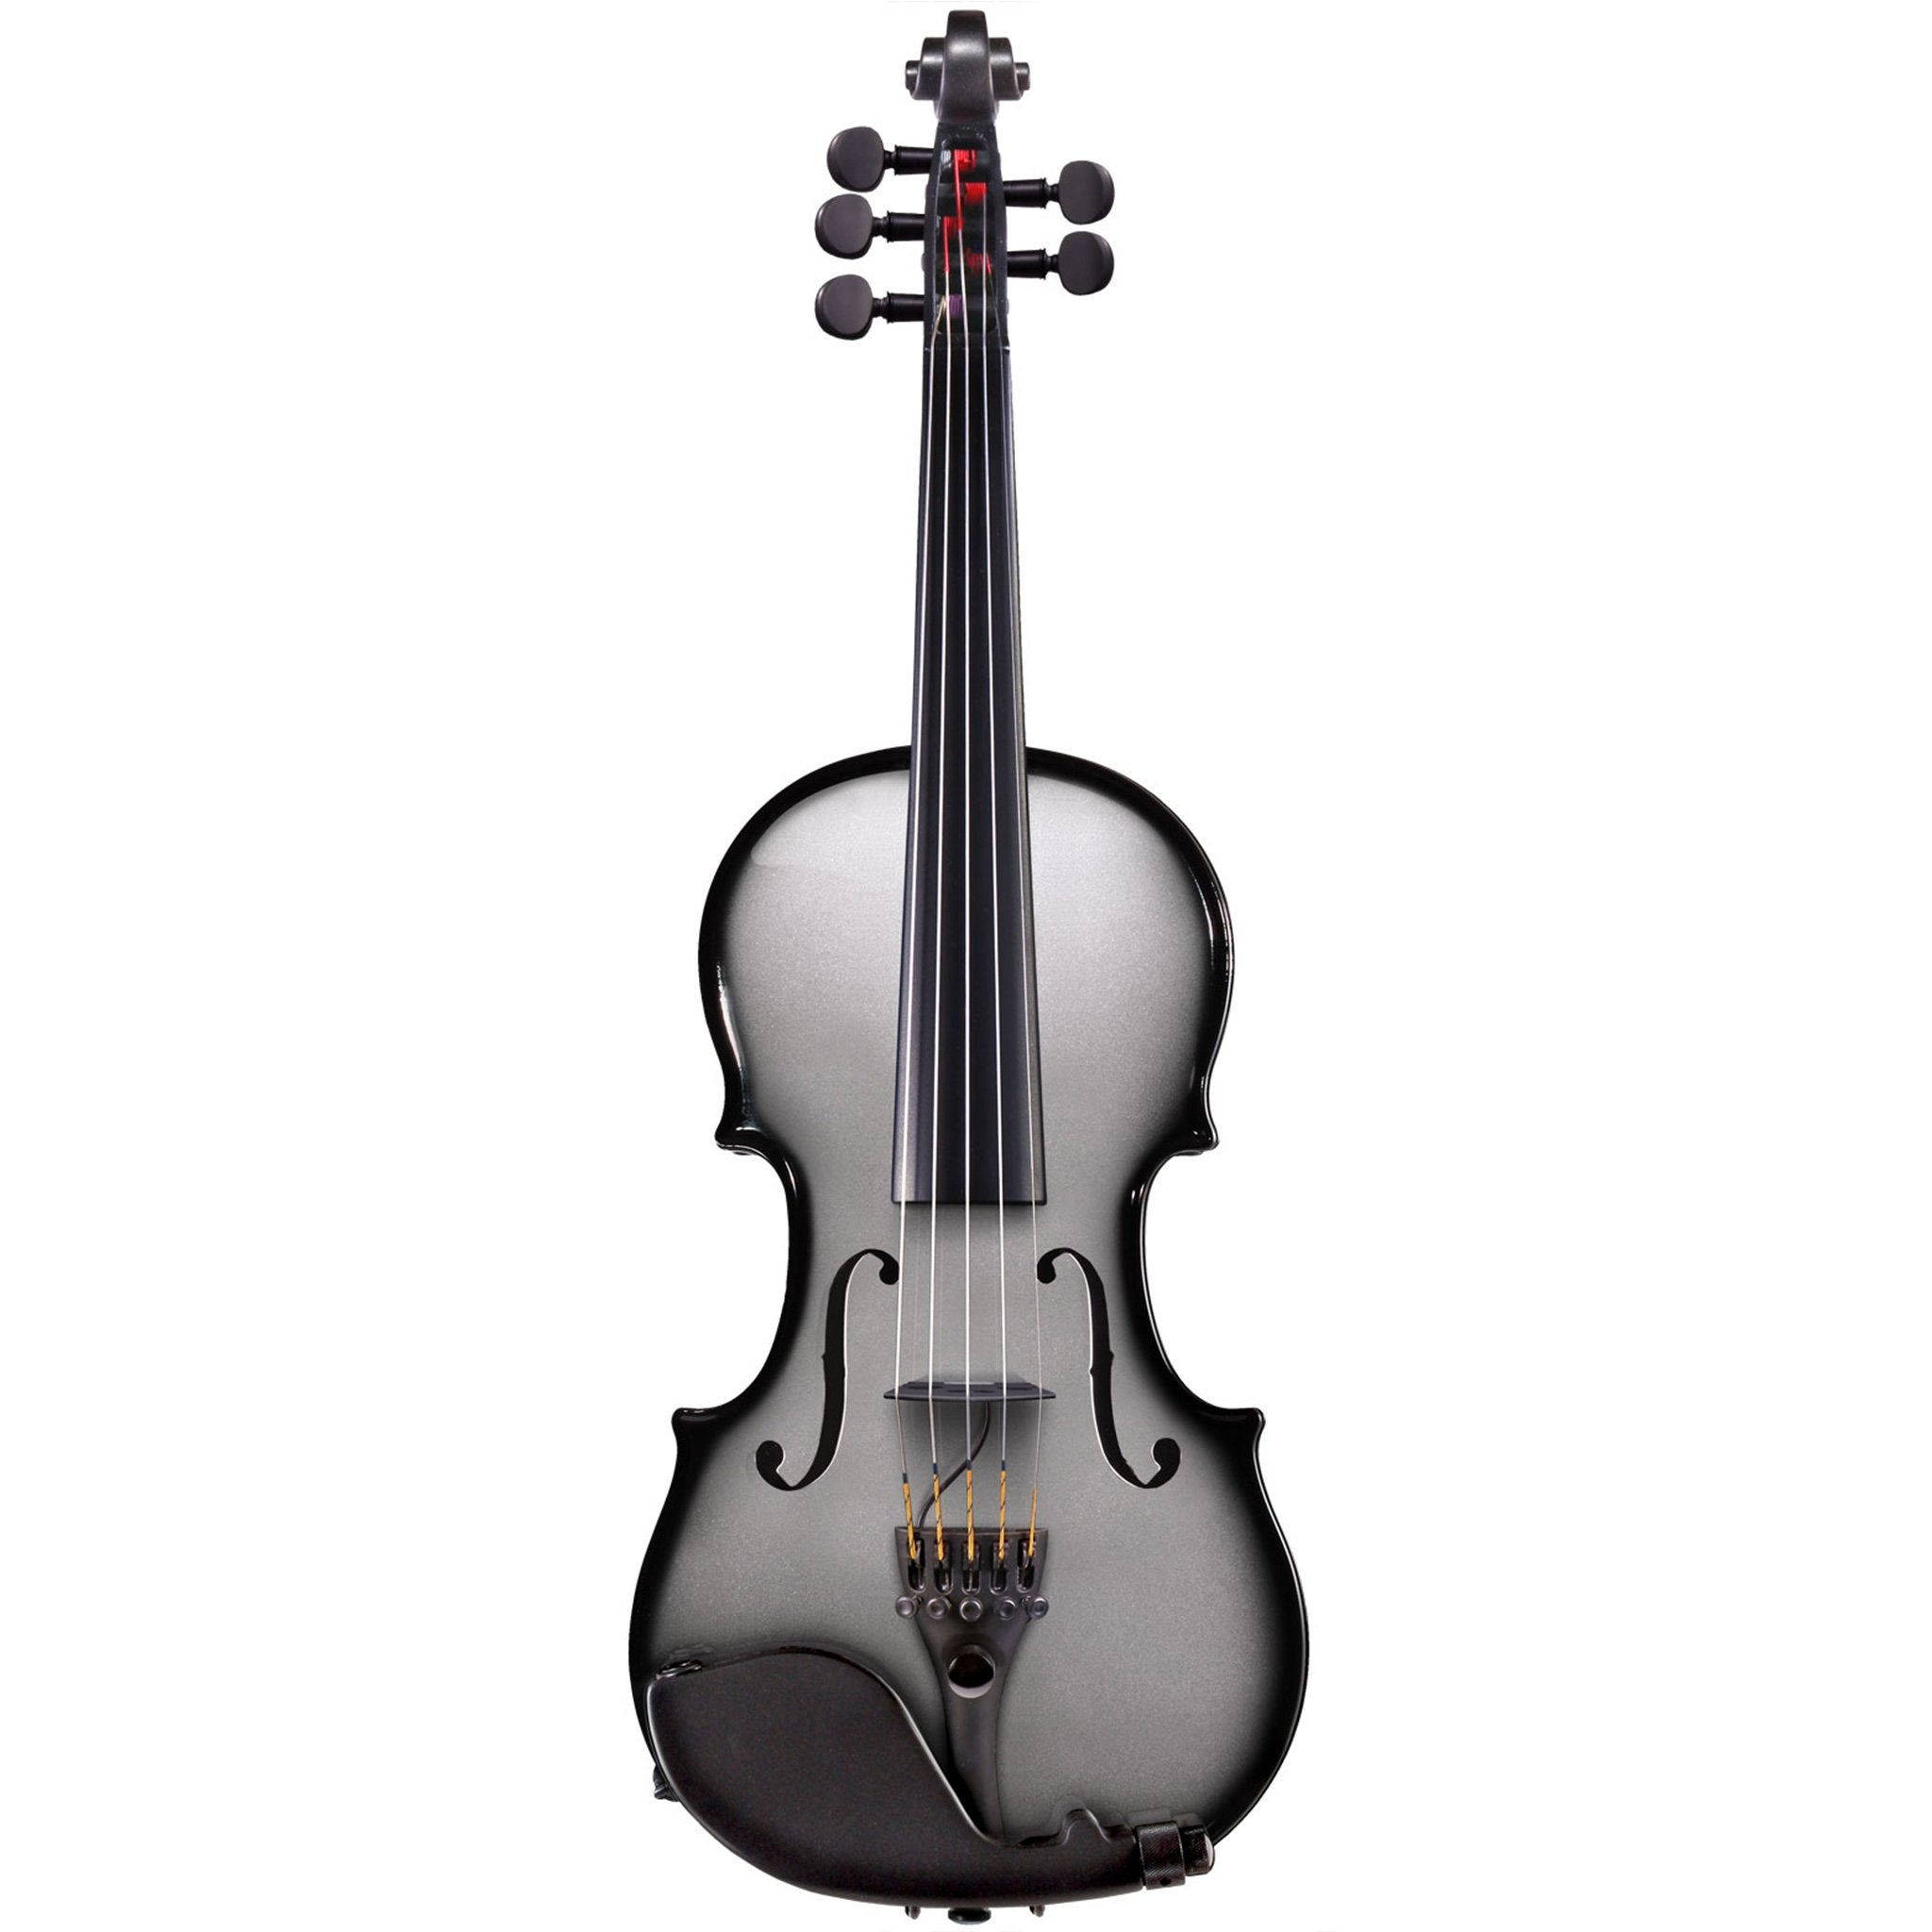 Glasser AEX Carbon Composite Acoustic-Electric 5-String Violin